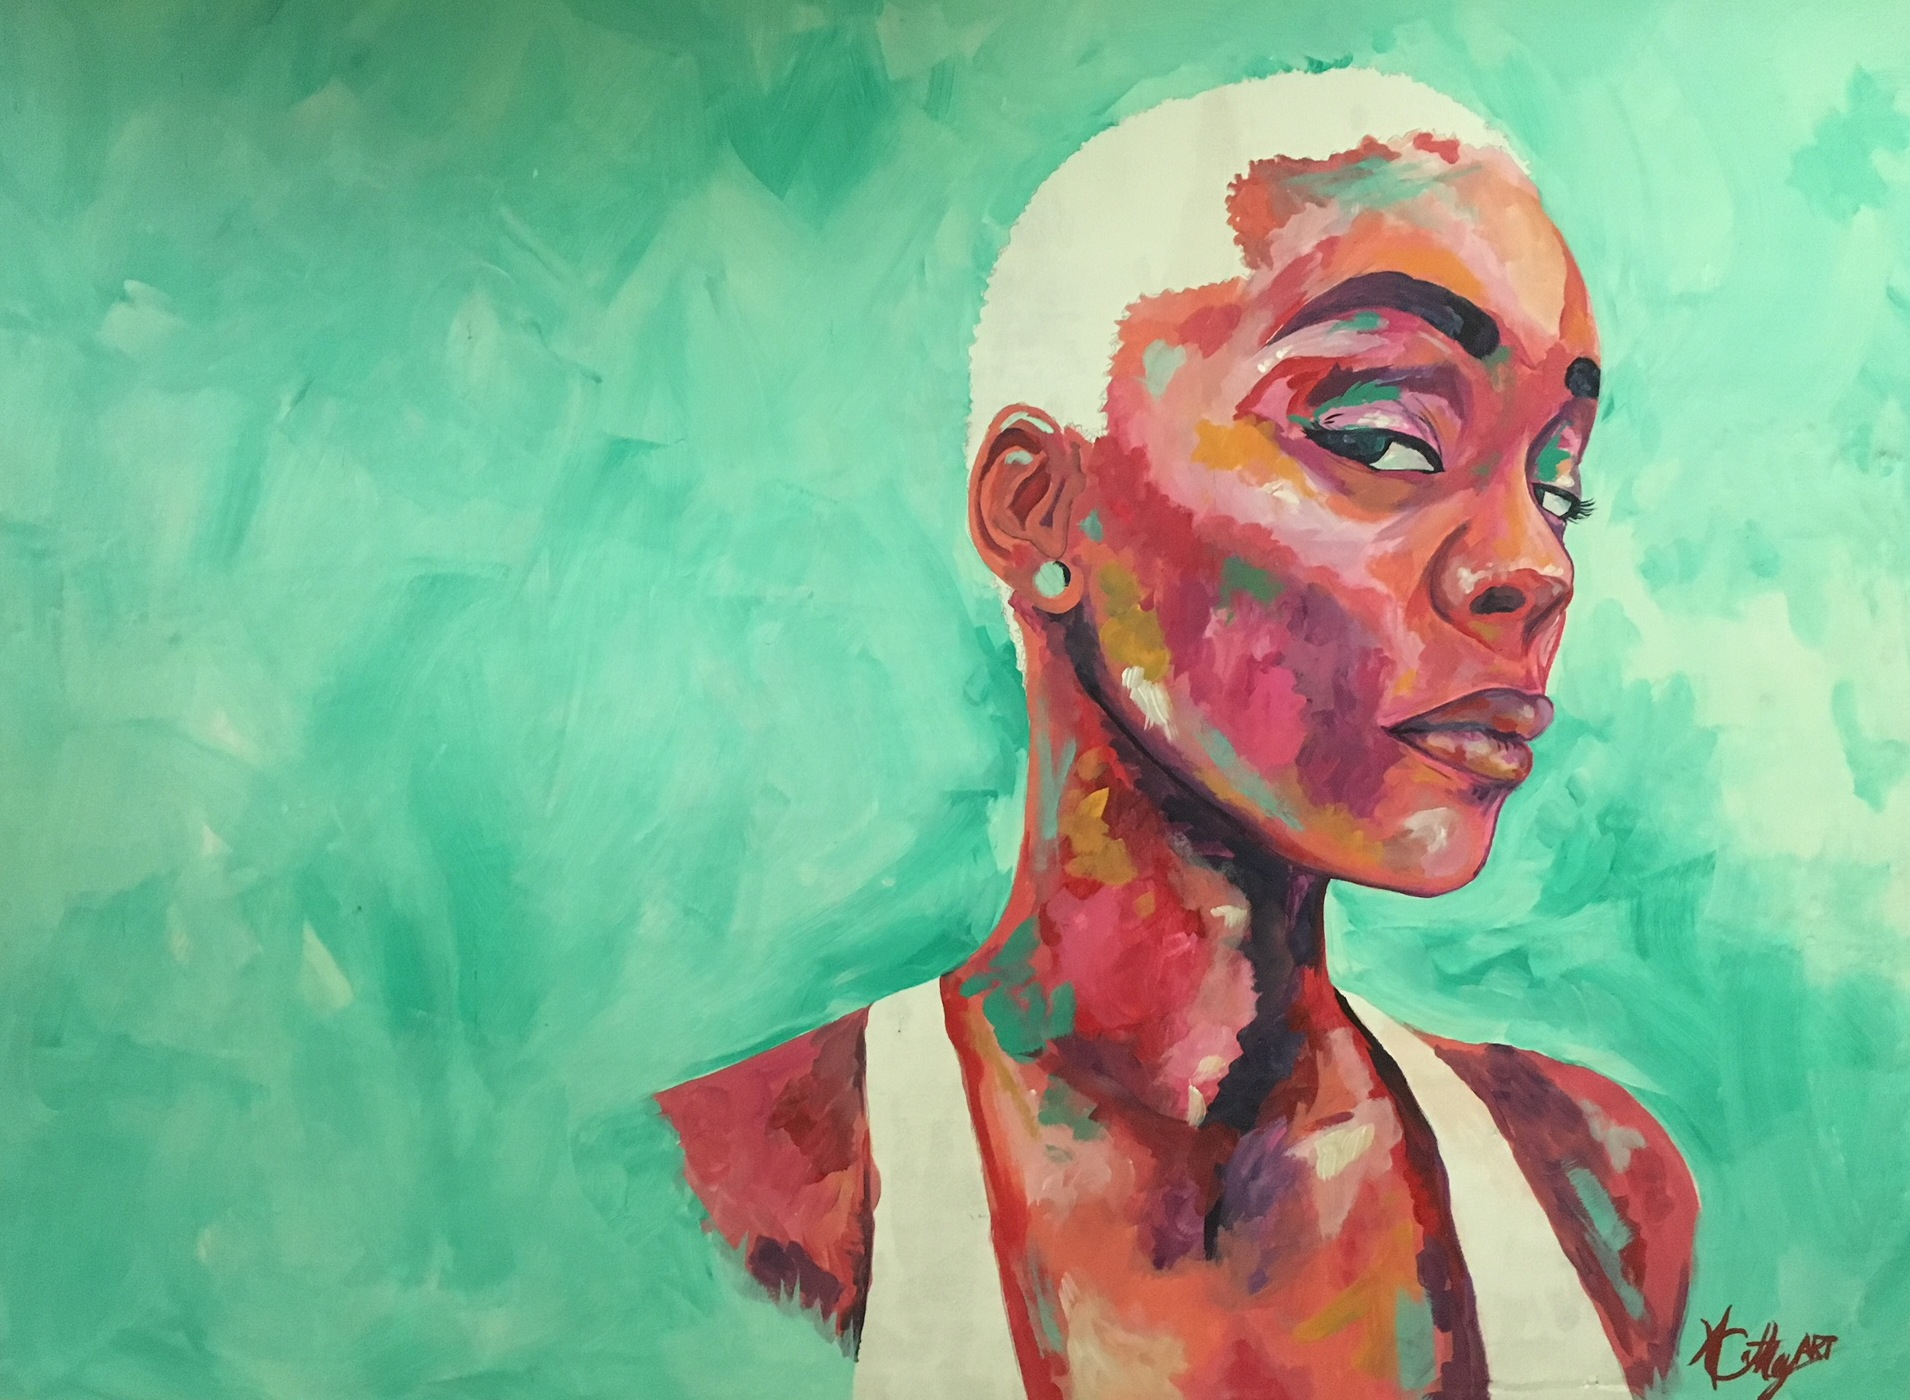 """""""Lakeishia"""" by Ashley Cathey,Acrylic and graphite on up-cycled plywood panel, 36x40in,$750"""